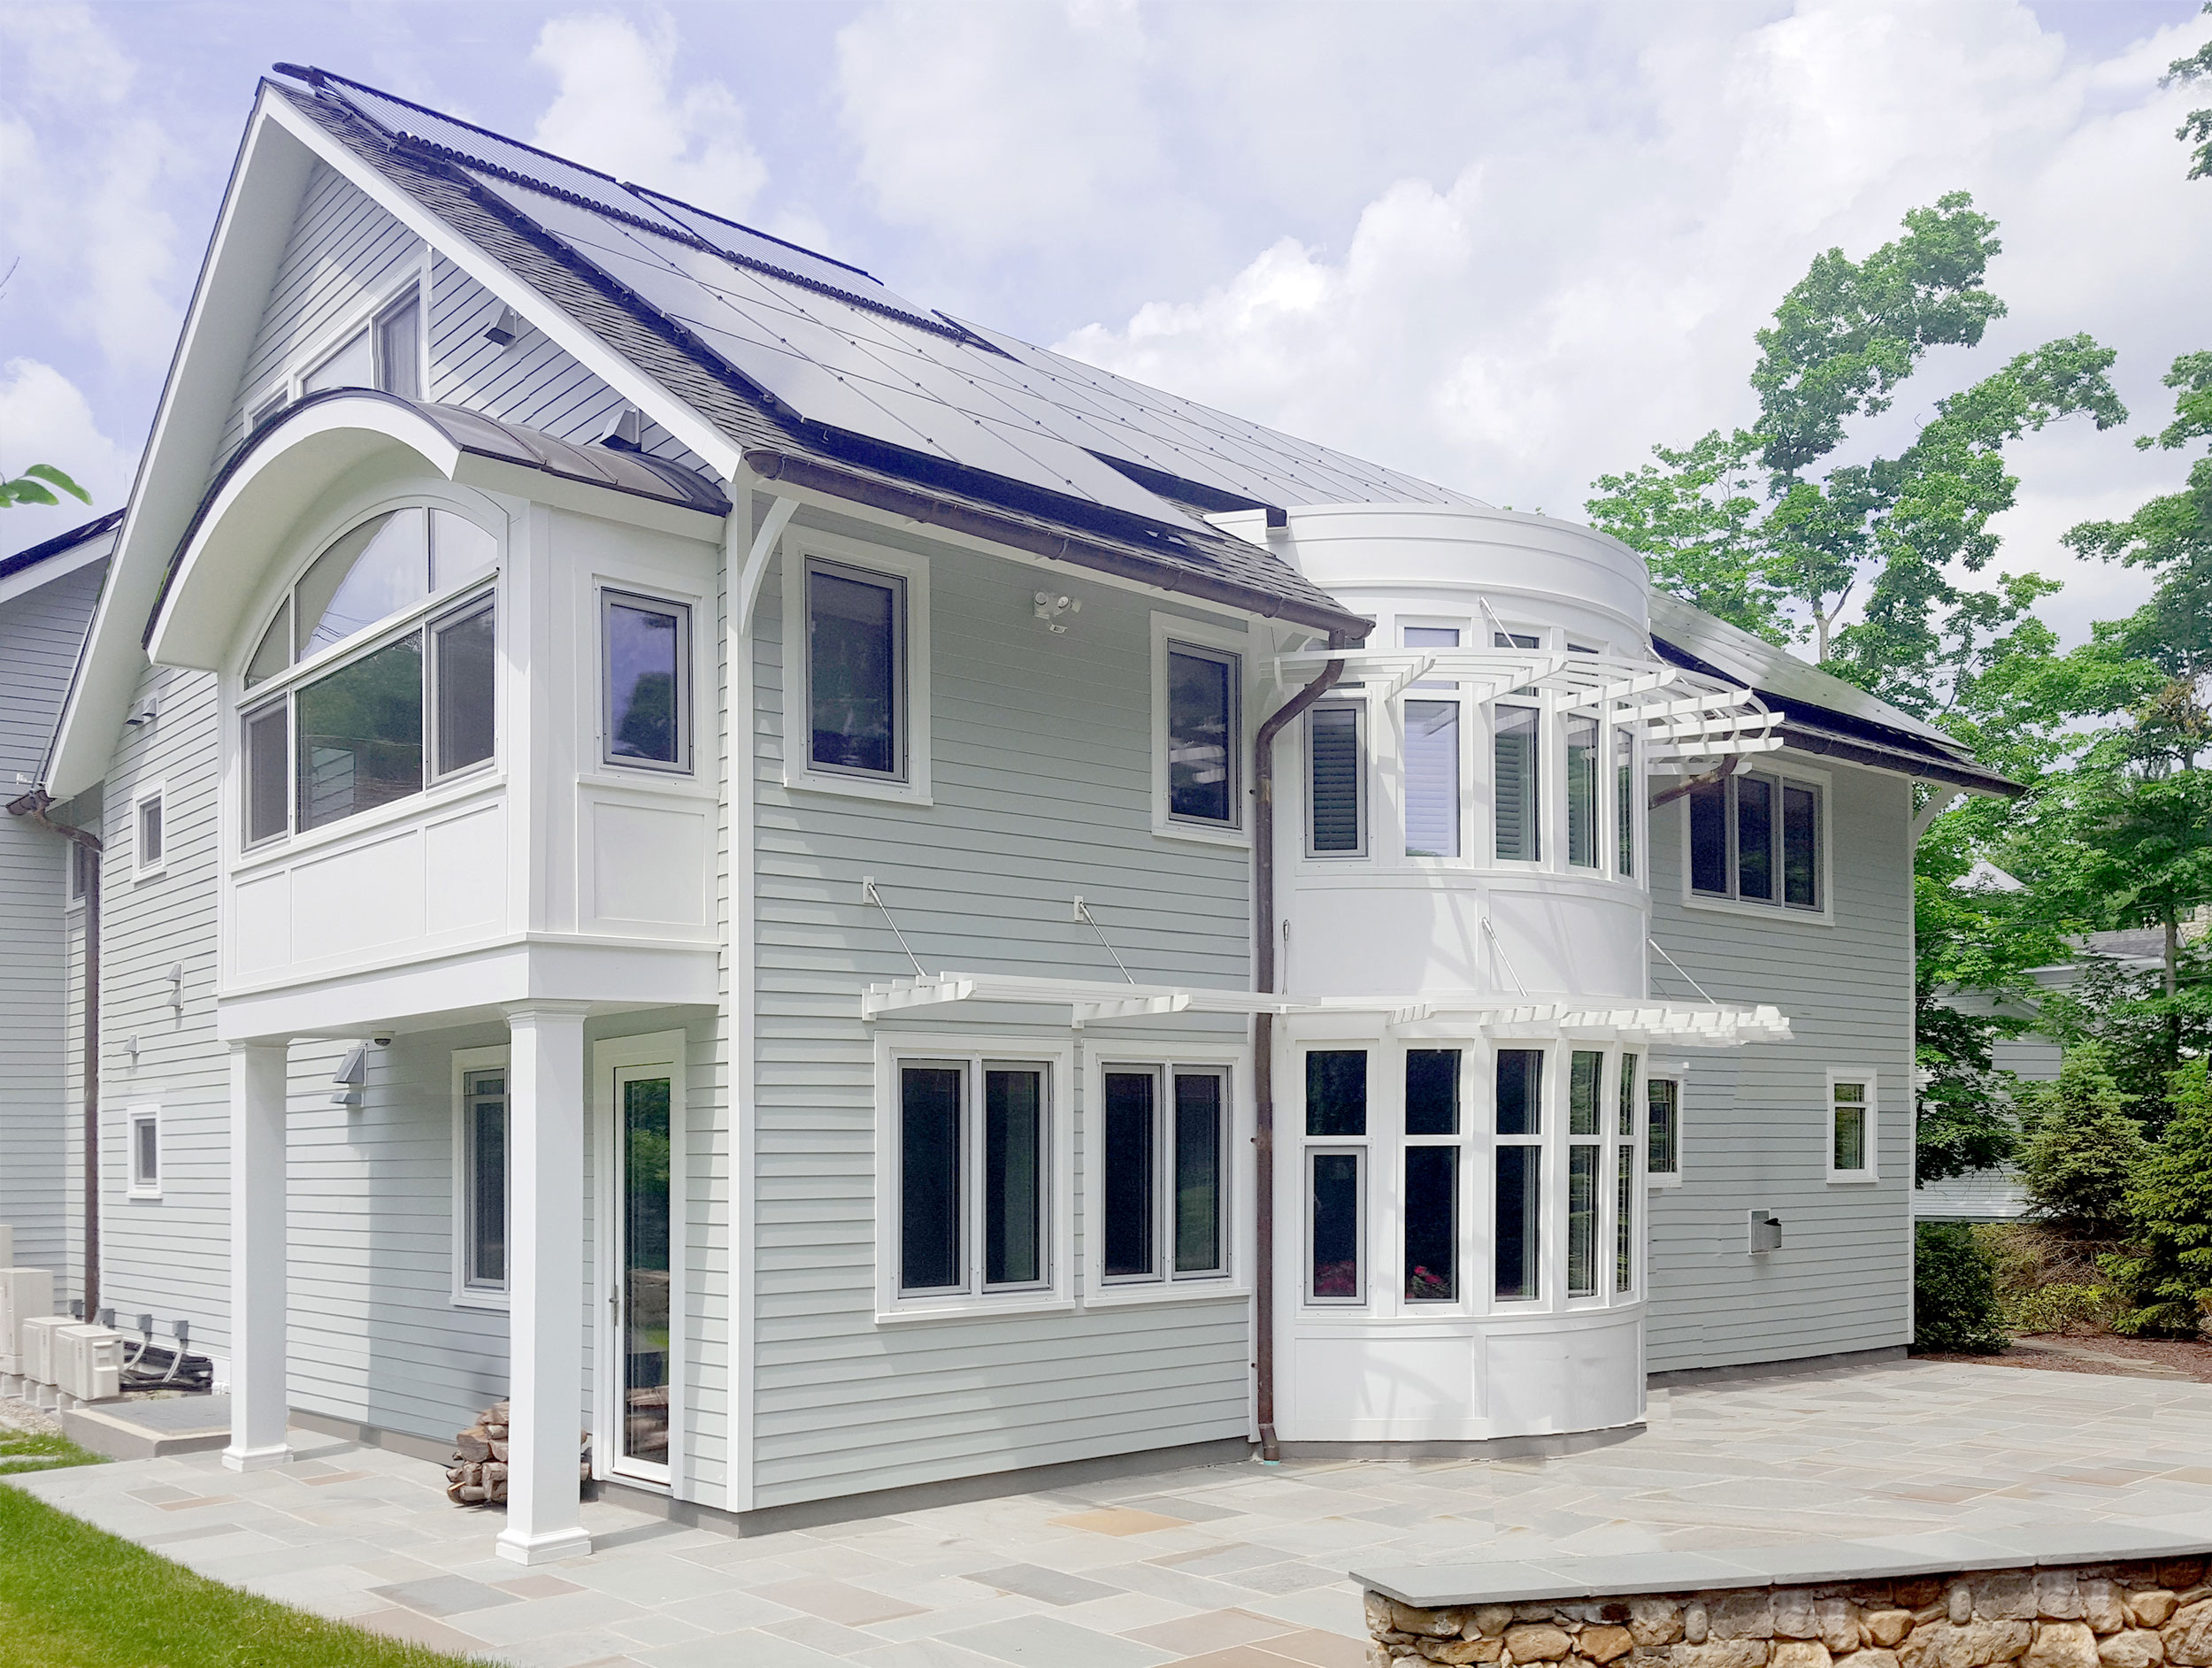 See more photos of this zero-energy home in New Canaan, CT